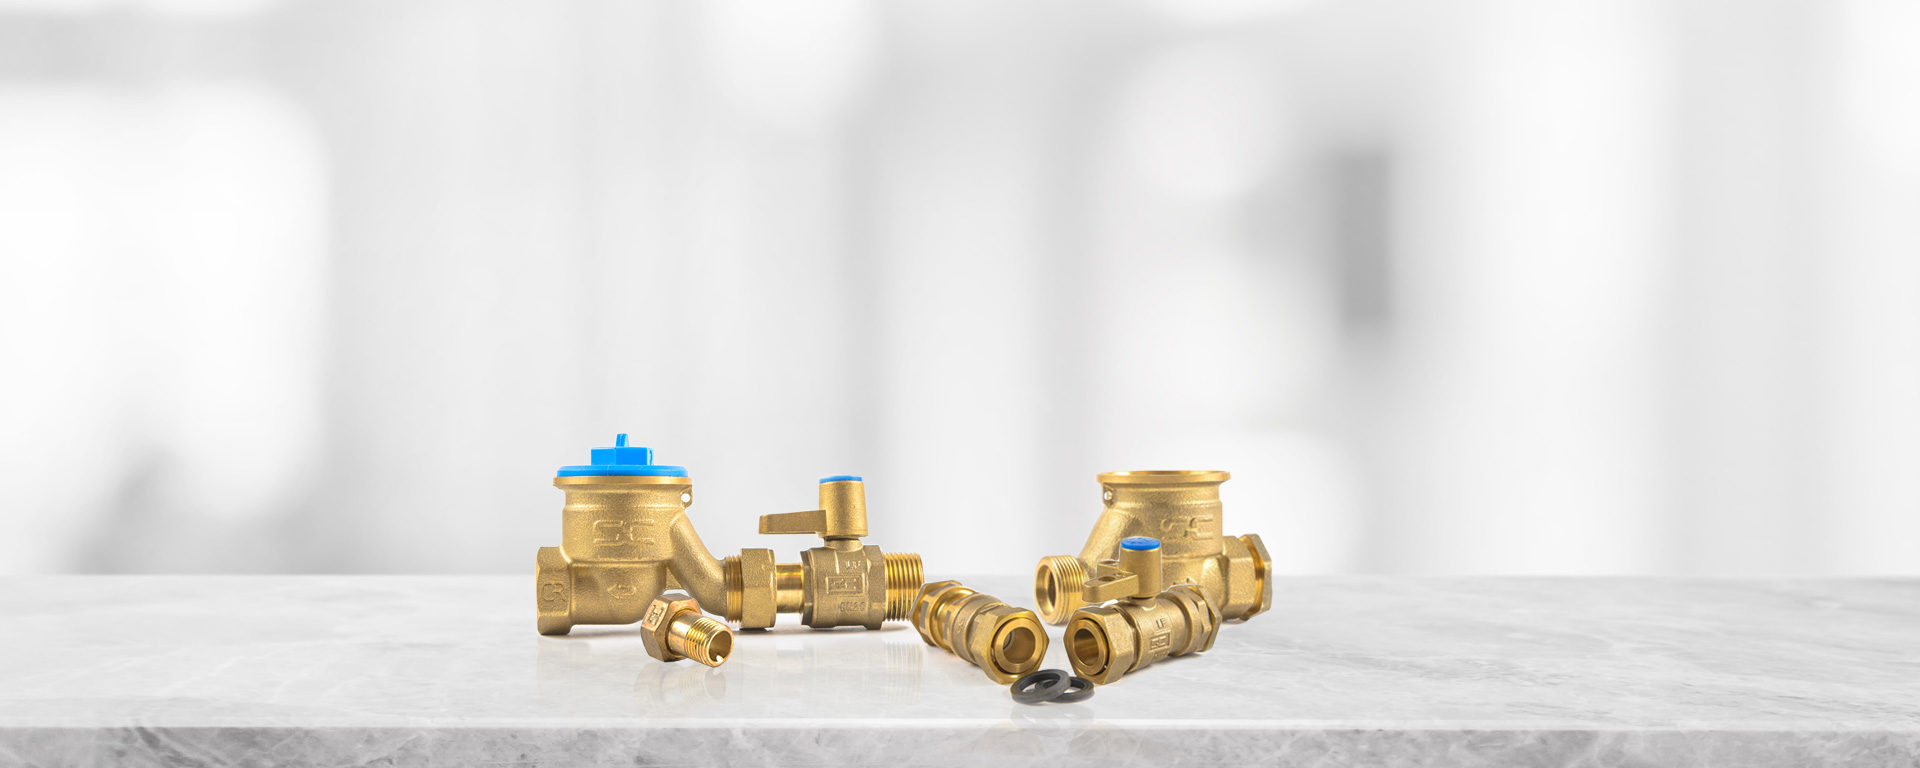 Strongcast products are designed from industry experience to improve installation processes while reducing water losses